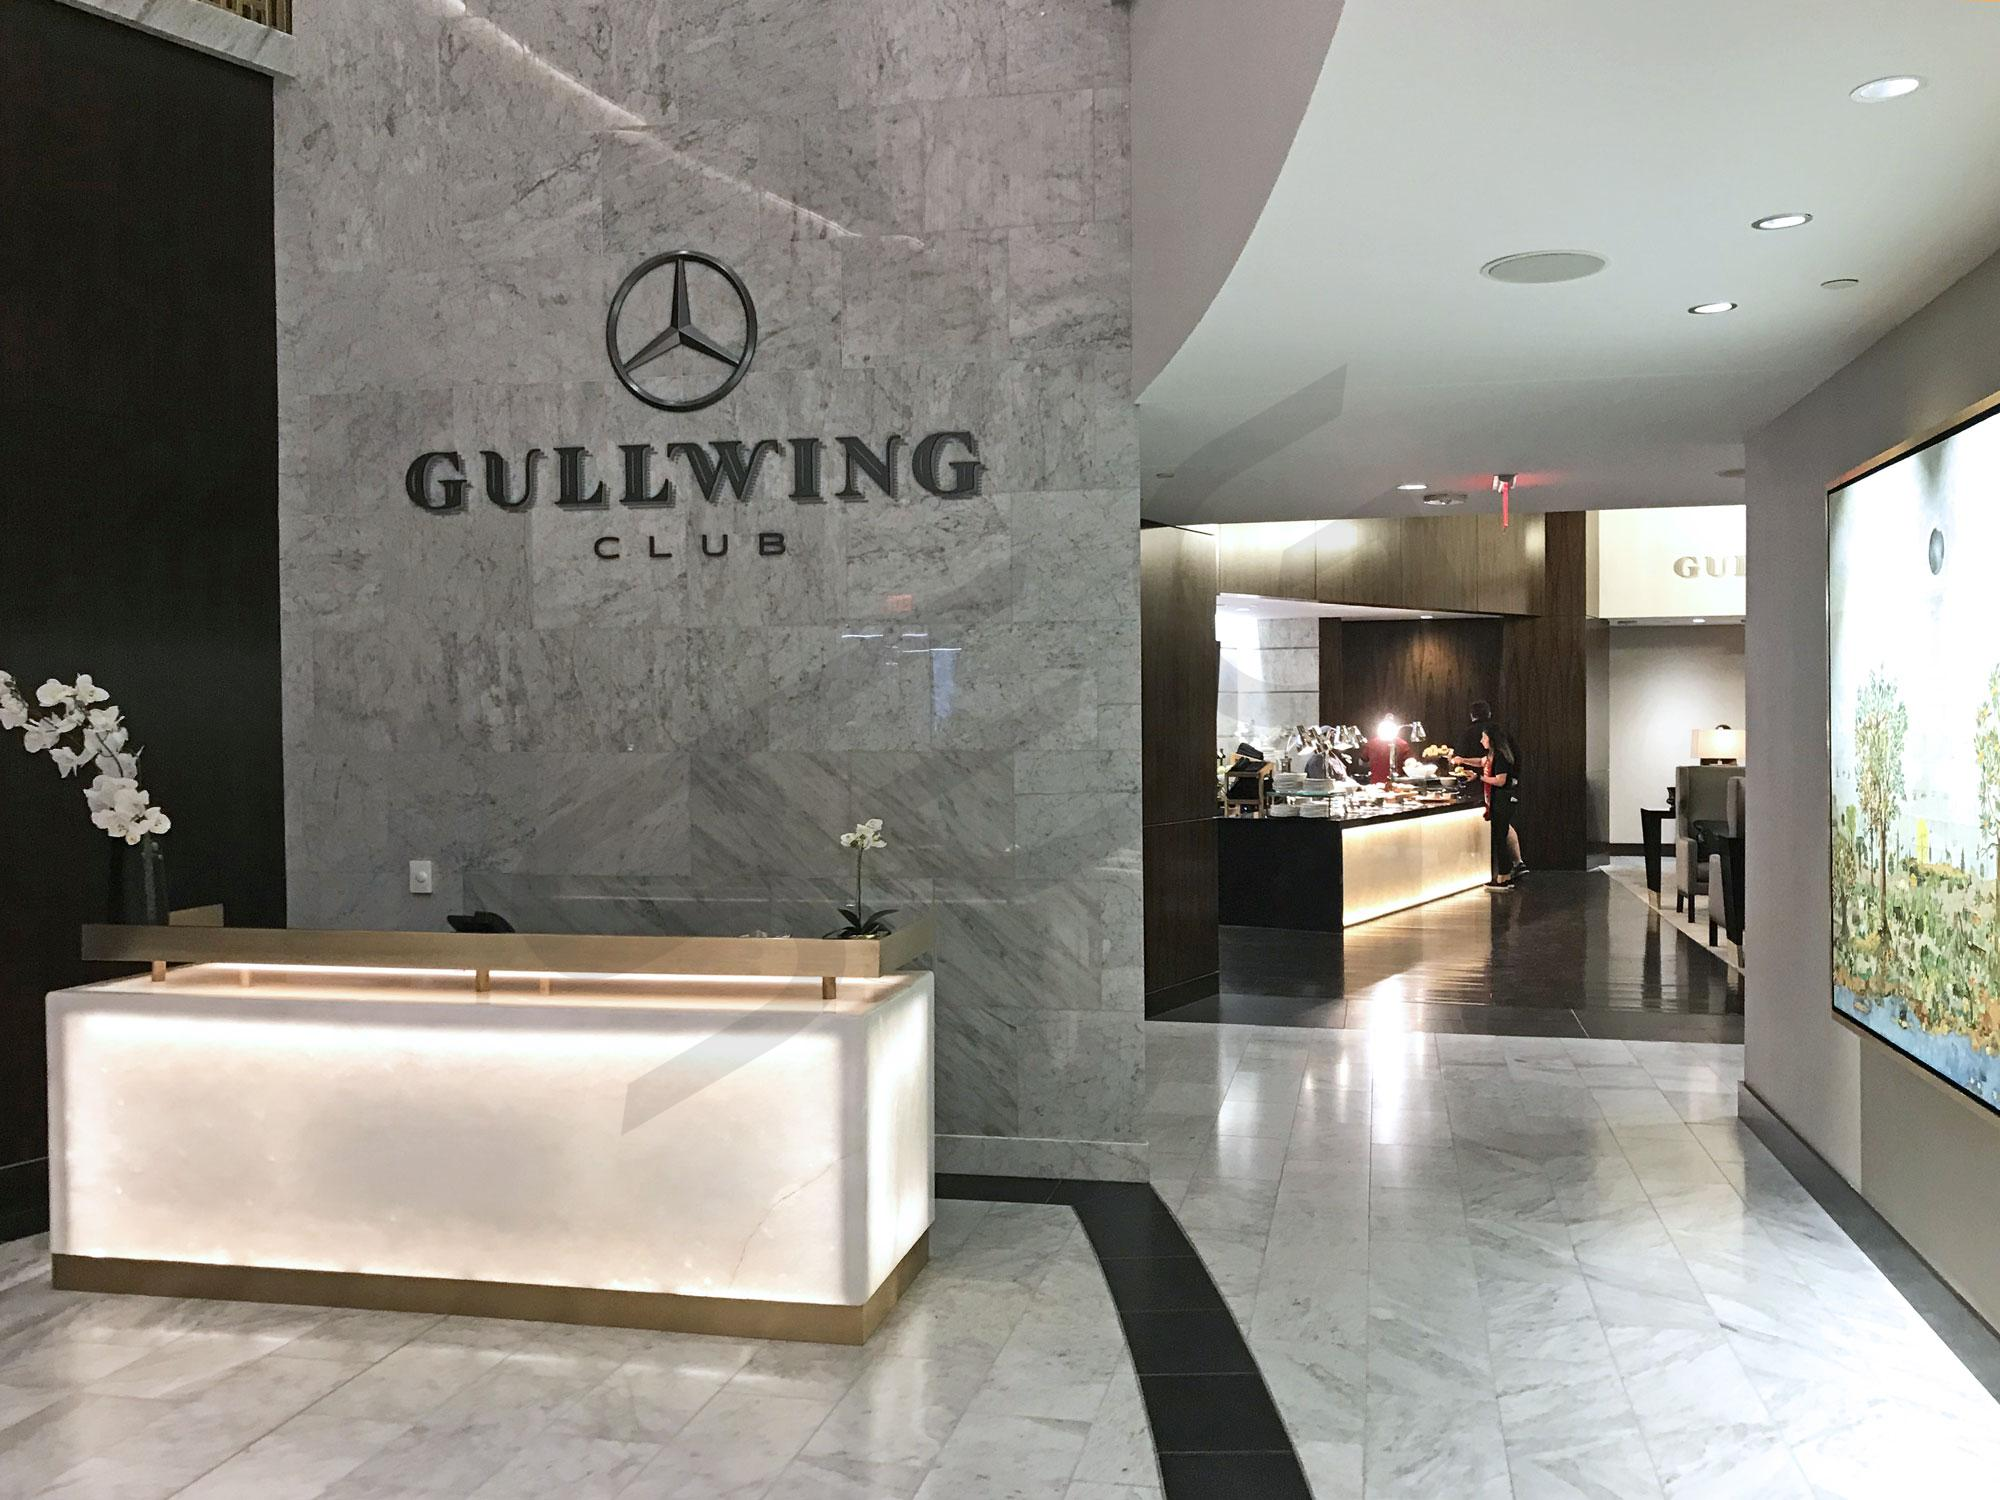 Gullwing Club Suite ticketholders have access to an incredible VIP stadium club just outside their suite